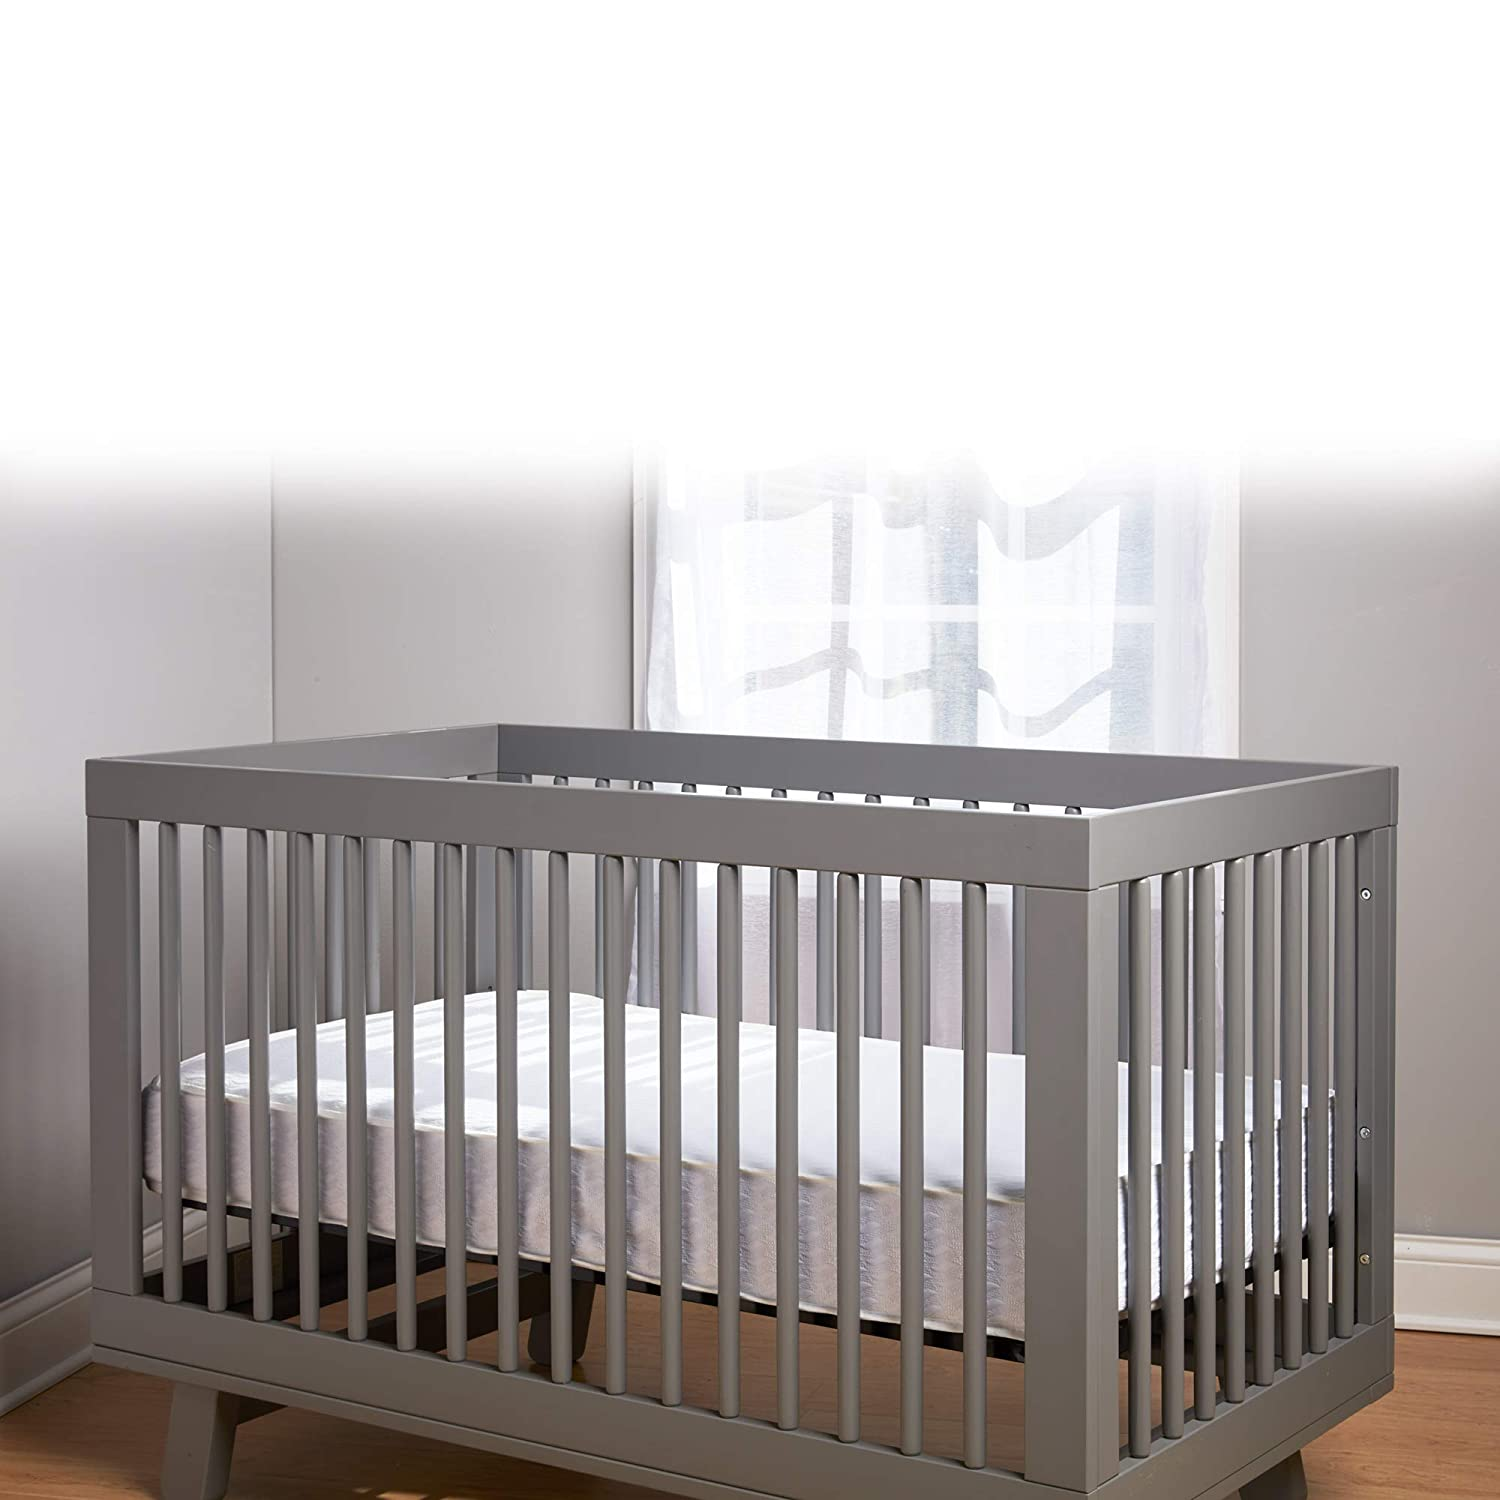 """BreathableBaby Eco Core 200 Crib Mattress for Baby No VOCs or Chemicals Water /& Stain Resistant Non-Toxic Standard 52/""""x28/"""" No Foam or Latex Lightweight"""